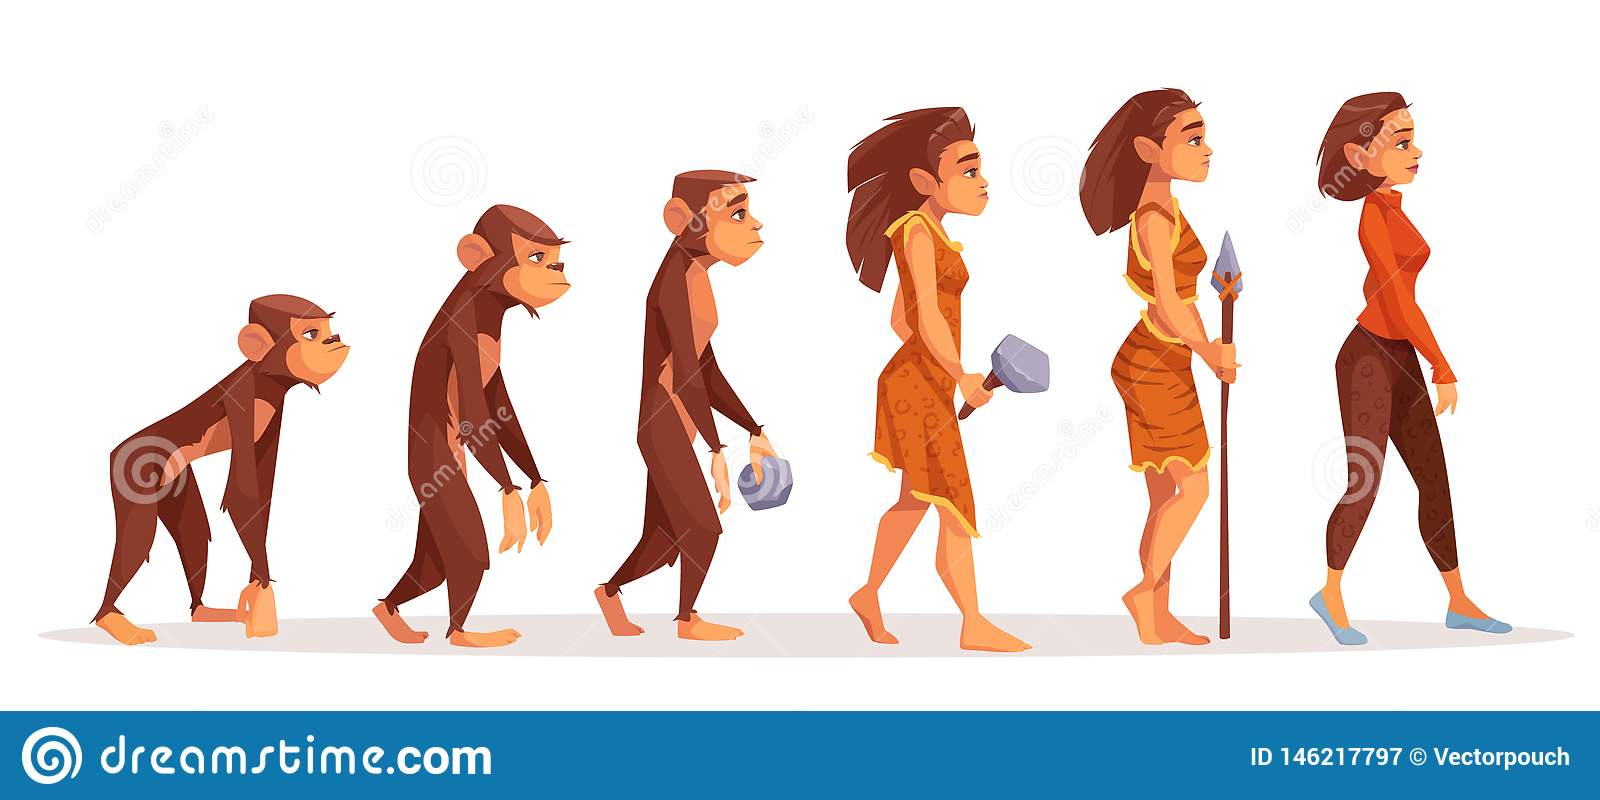 Human evolution from monkey to modern woman